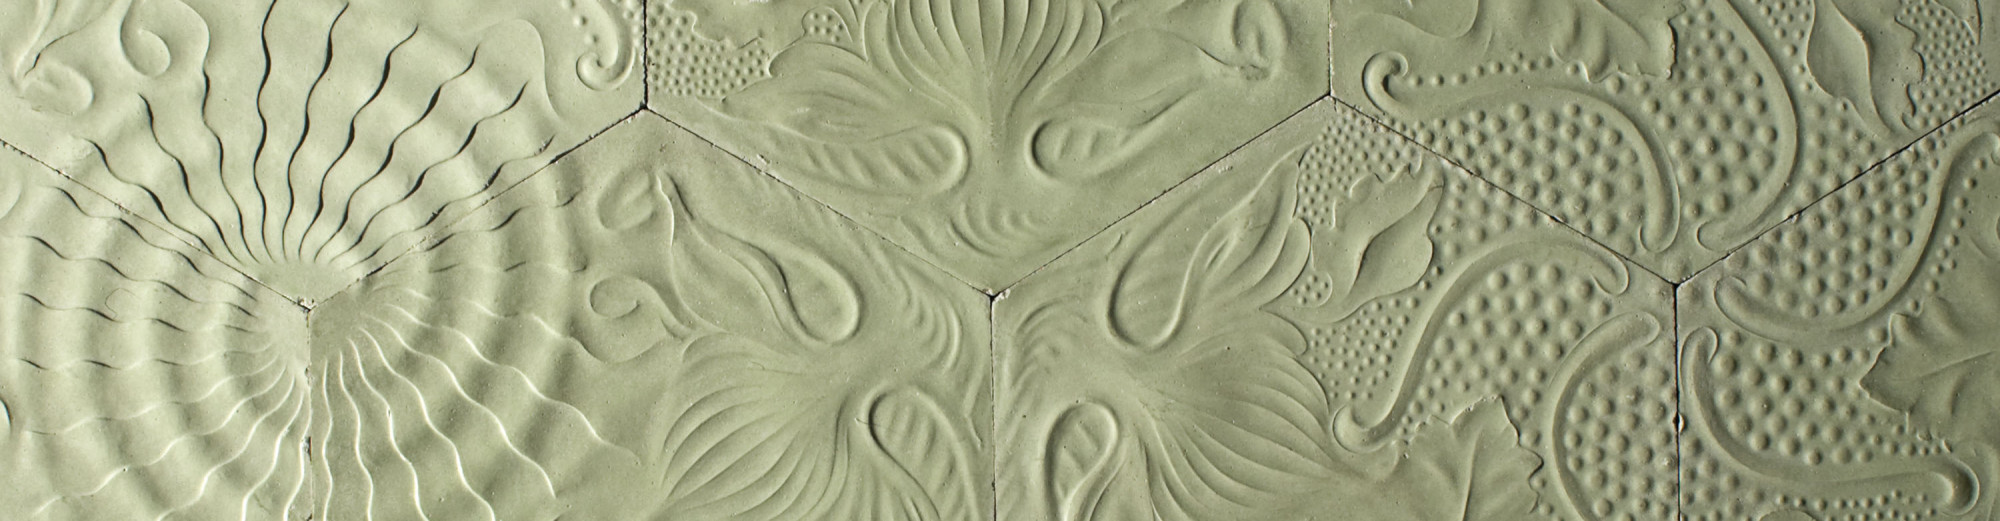 cropped-guadi-floor-tile.jpg